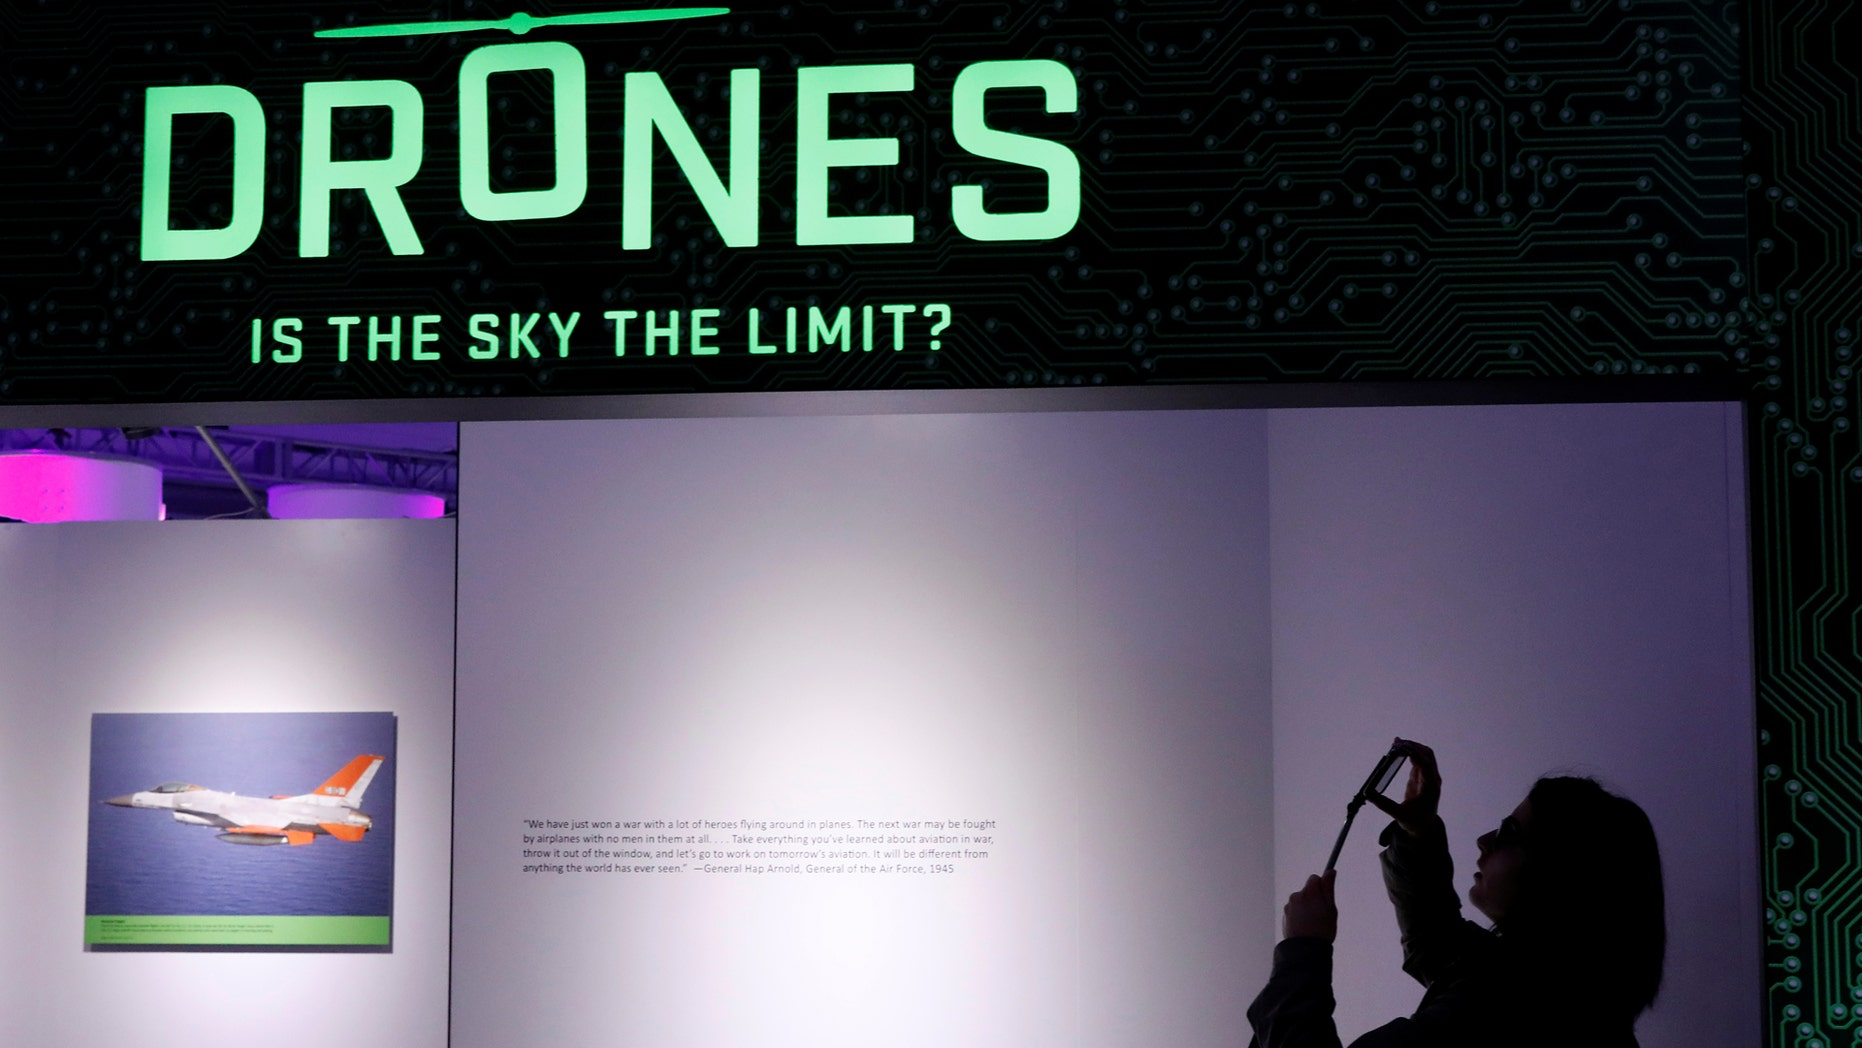 File photo: A guest photographs the entrance to the 'Drones: Is the Sky the Limit?' exhibition at the Intrepid Sea, Air & Space Museum in New York City, U.S., May 9, 2017. (REUTERS/Brendan McDermid)